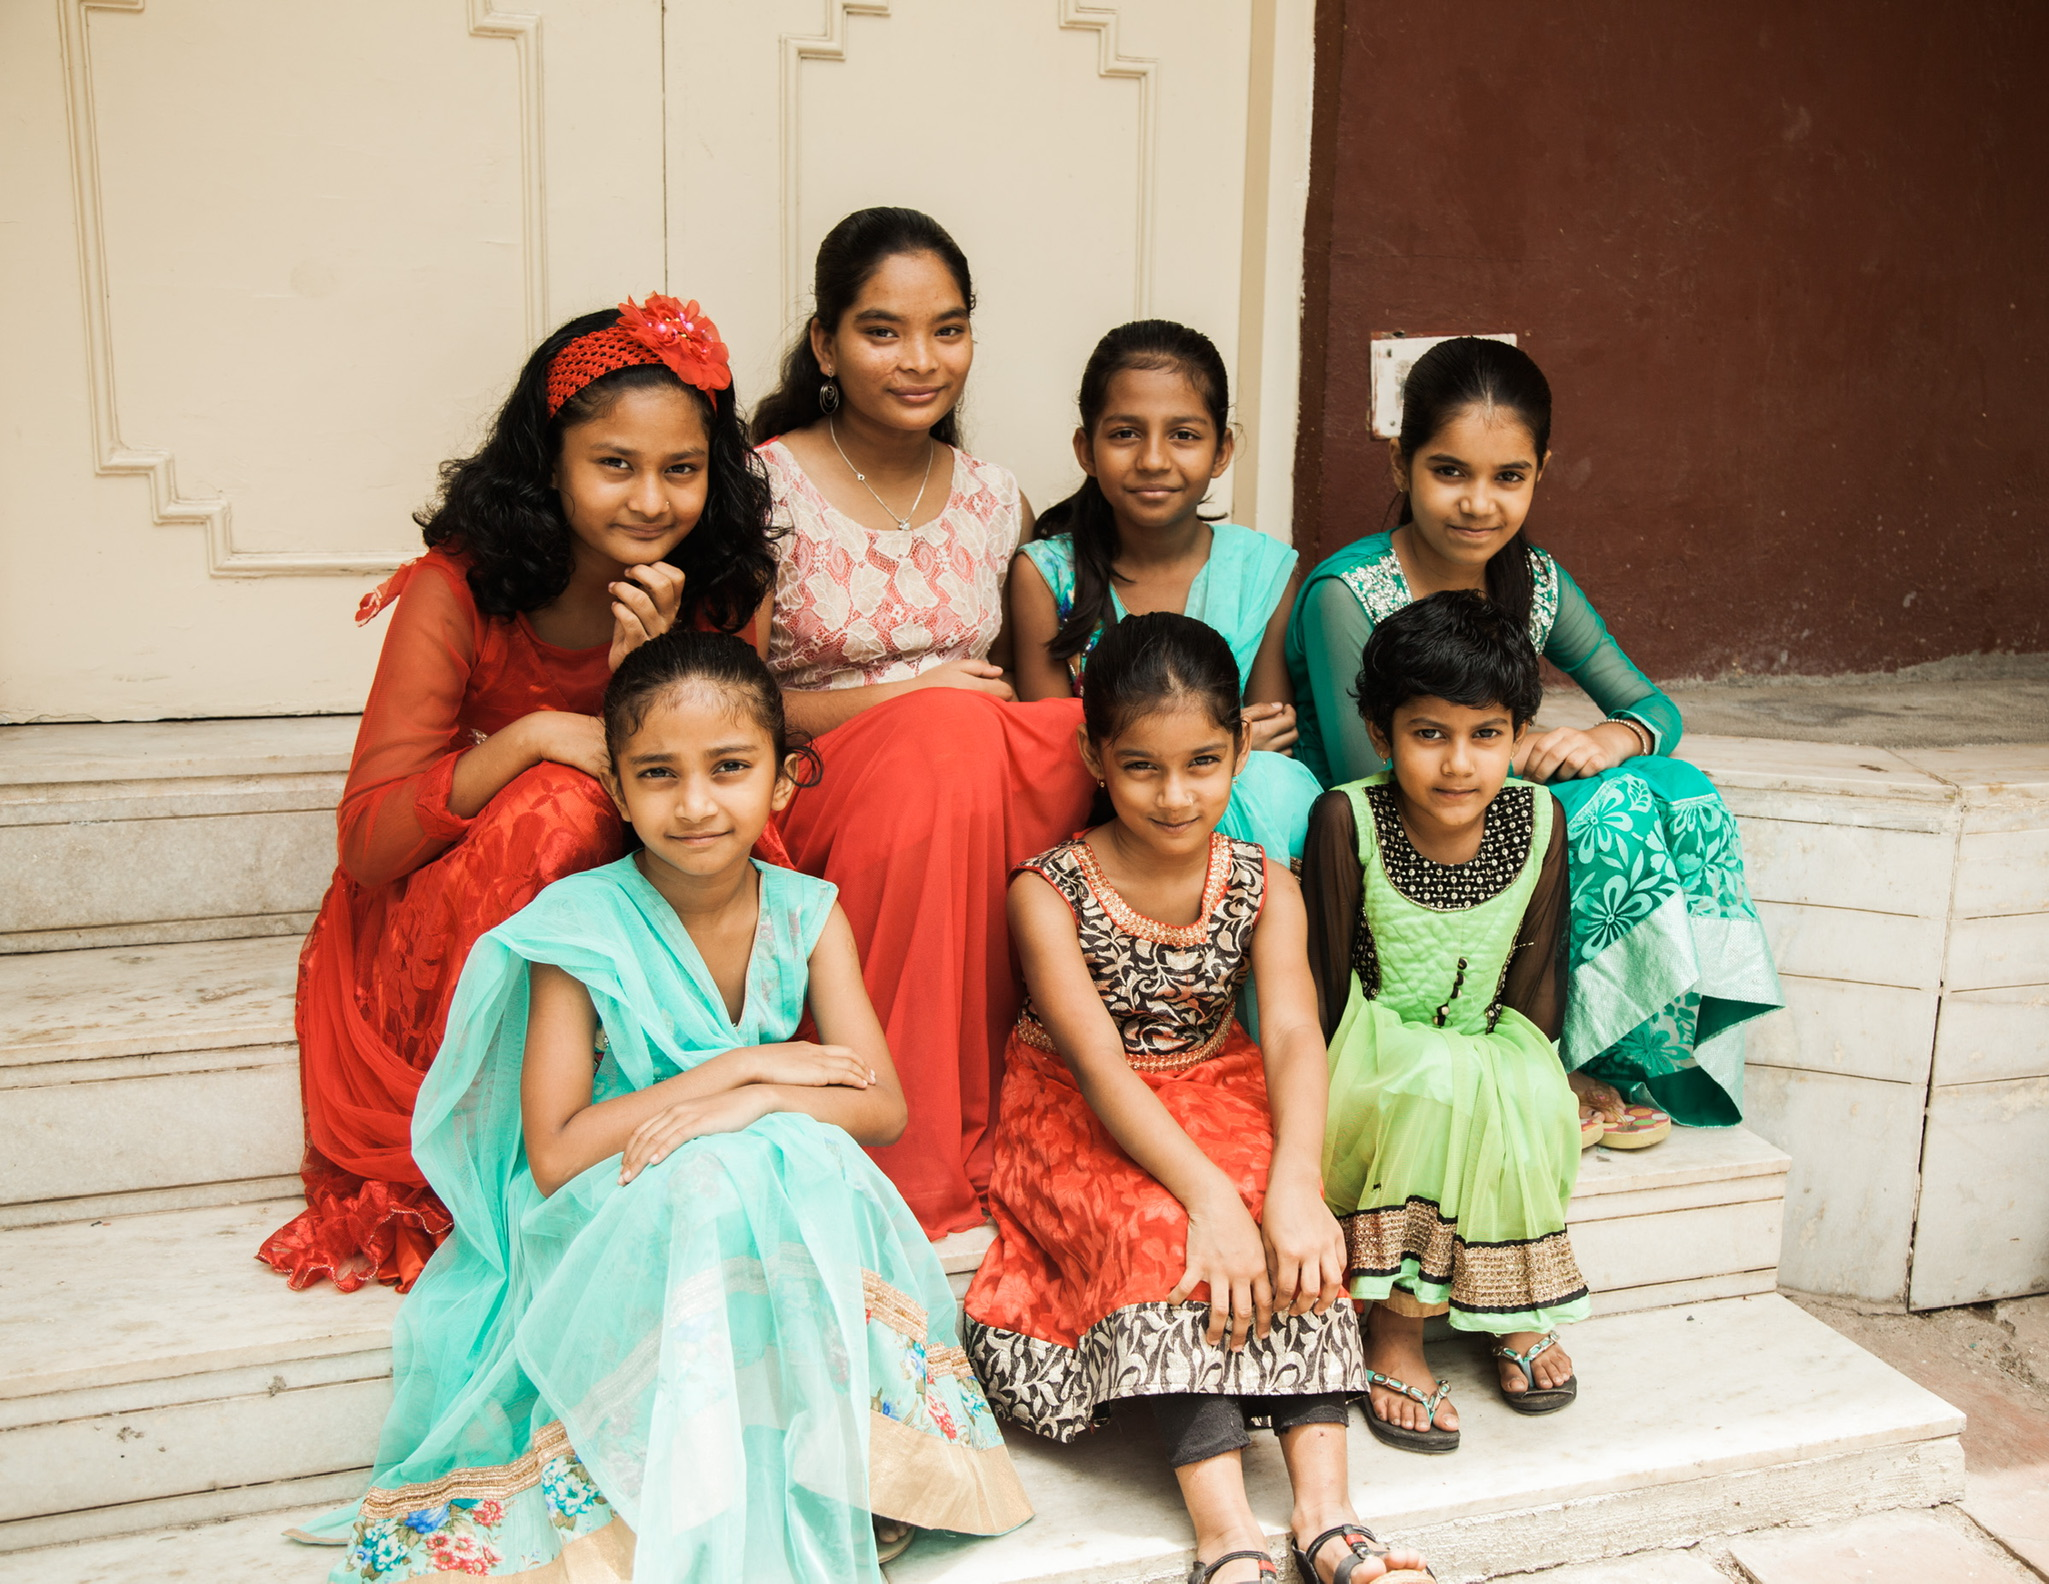 Finding Grace in a home for kids in India